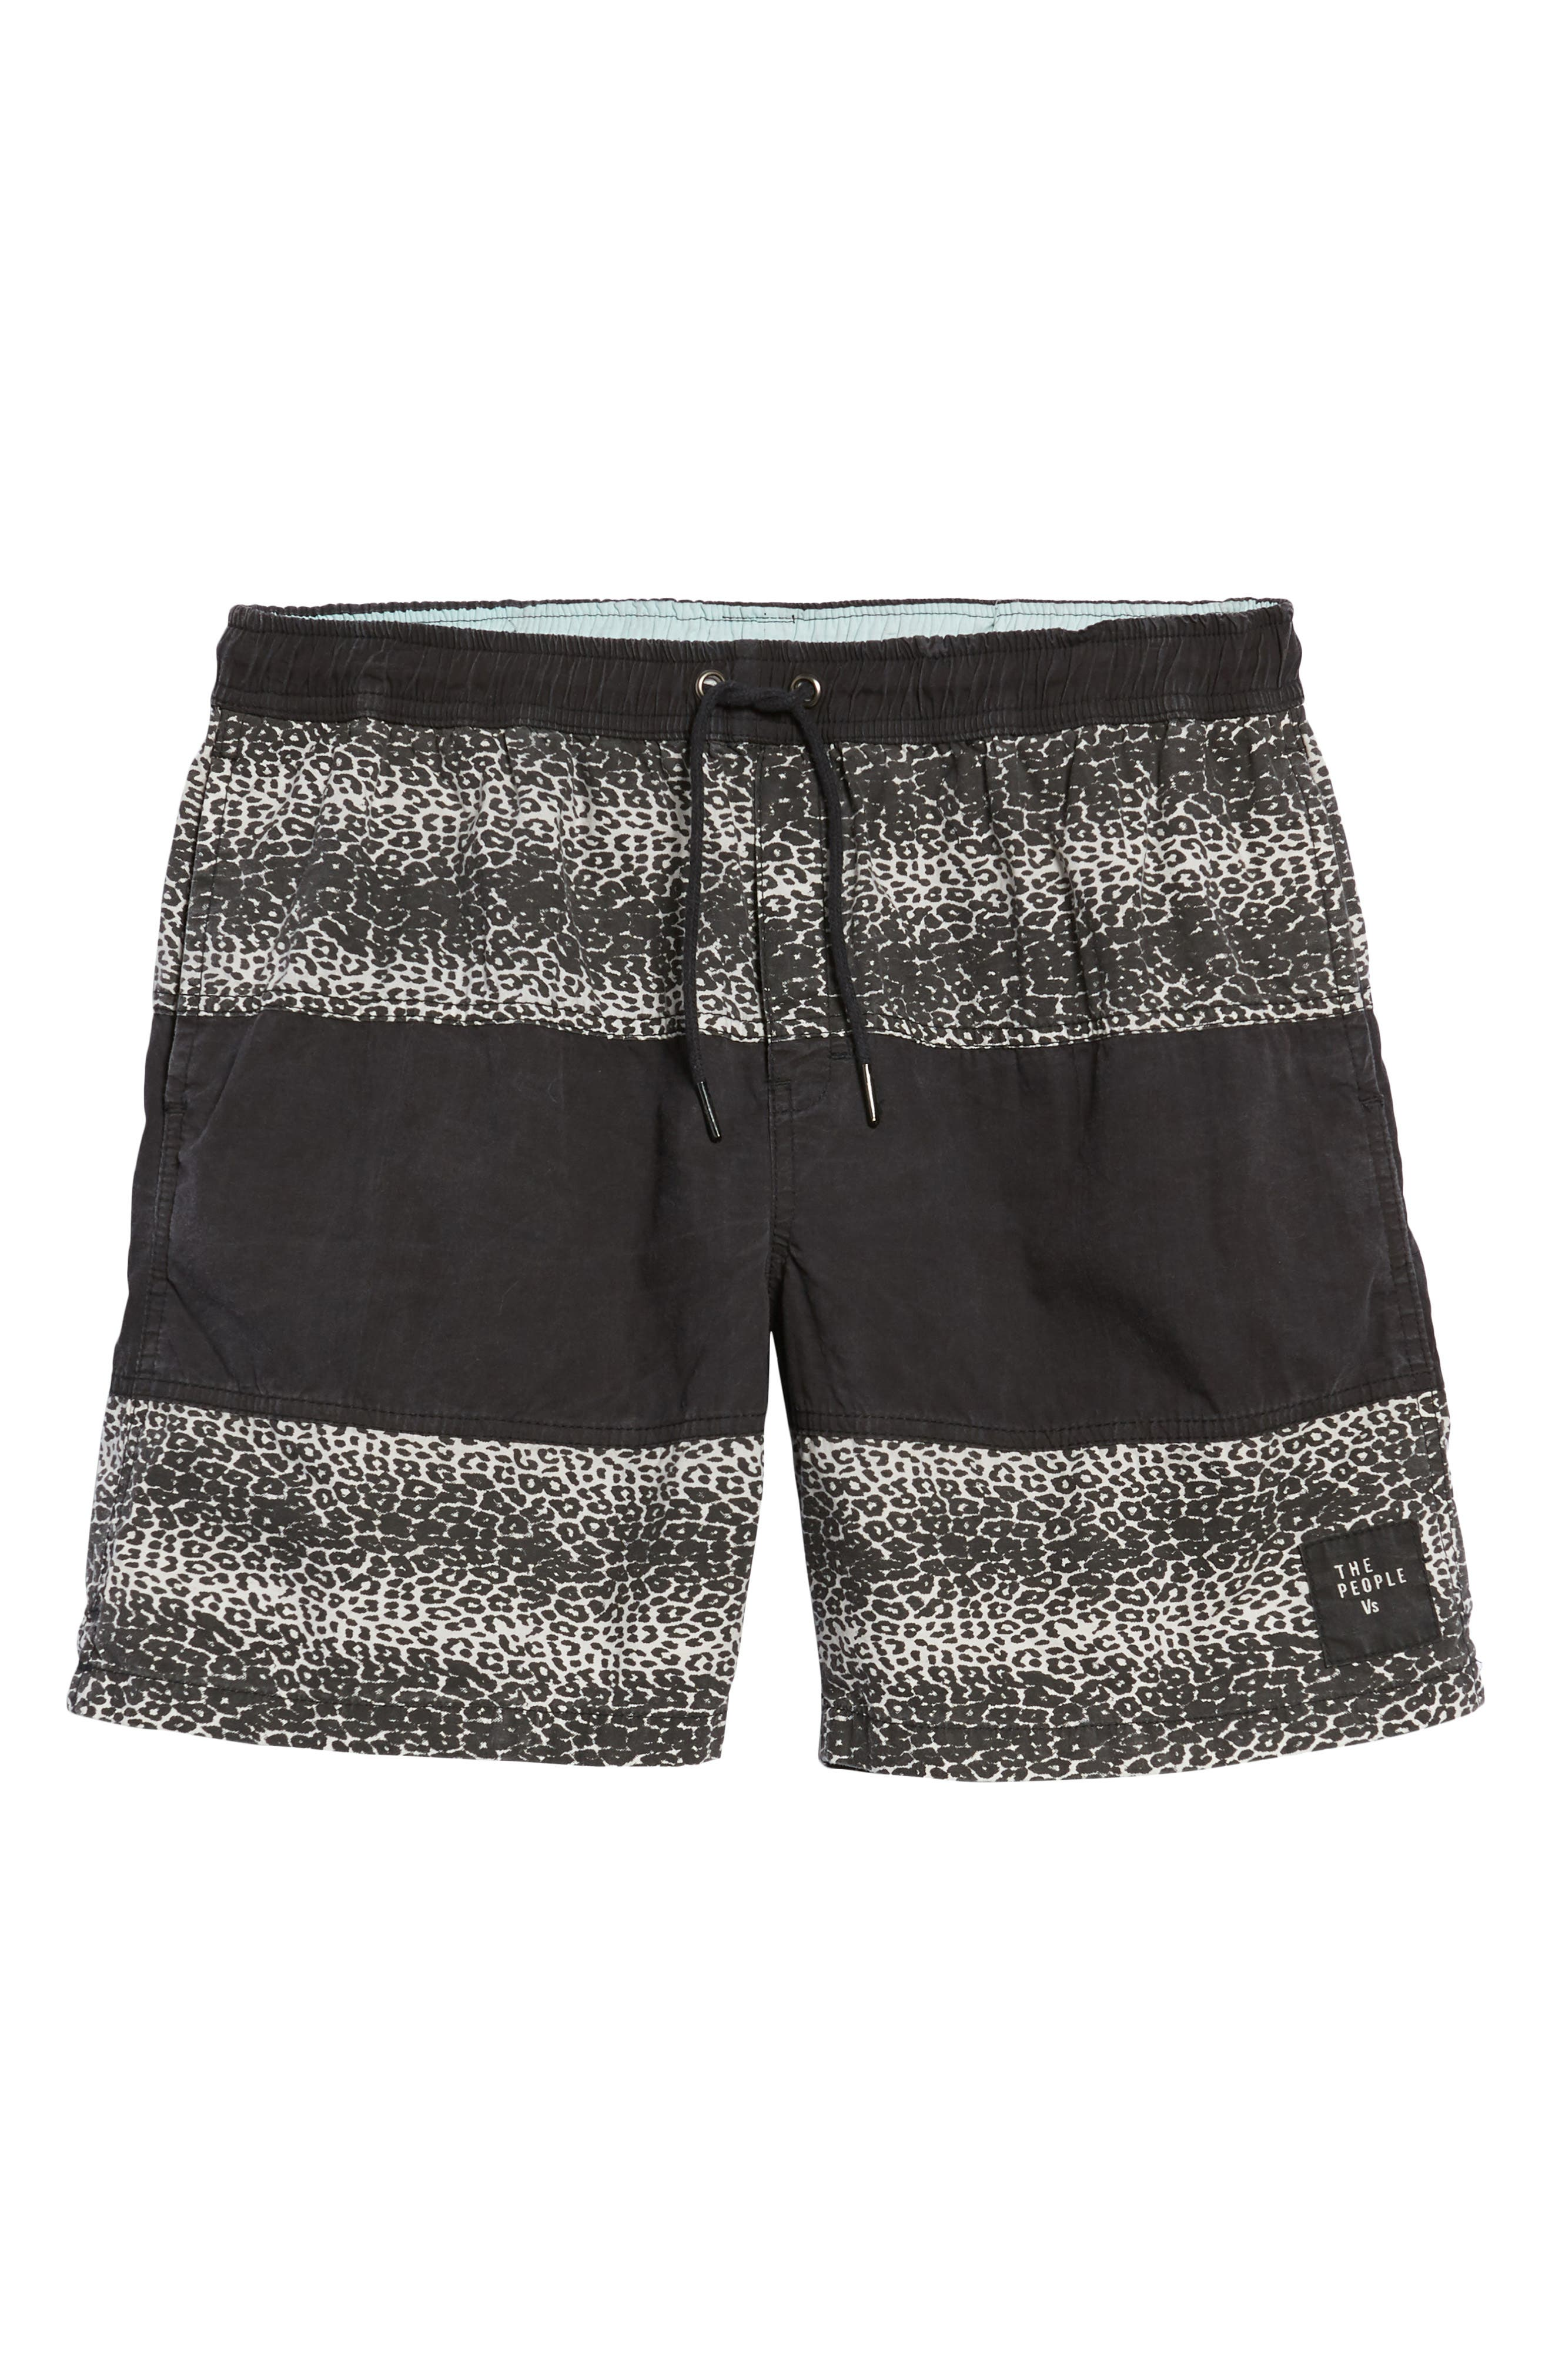 Easy Boardie Shorts,                             Alternate thumbnail 6, color,                             SNOW LEOPARD